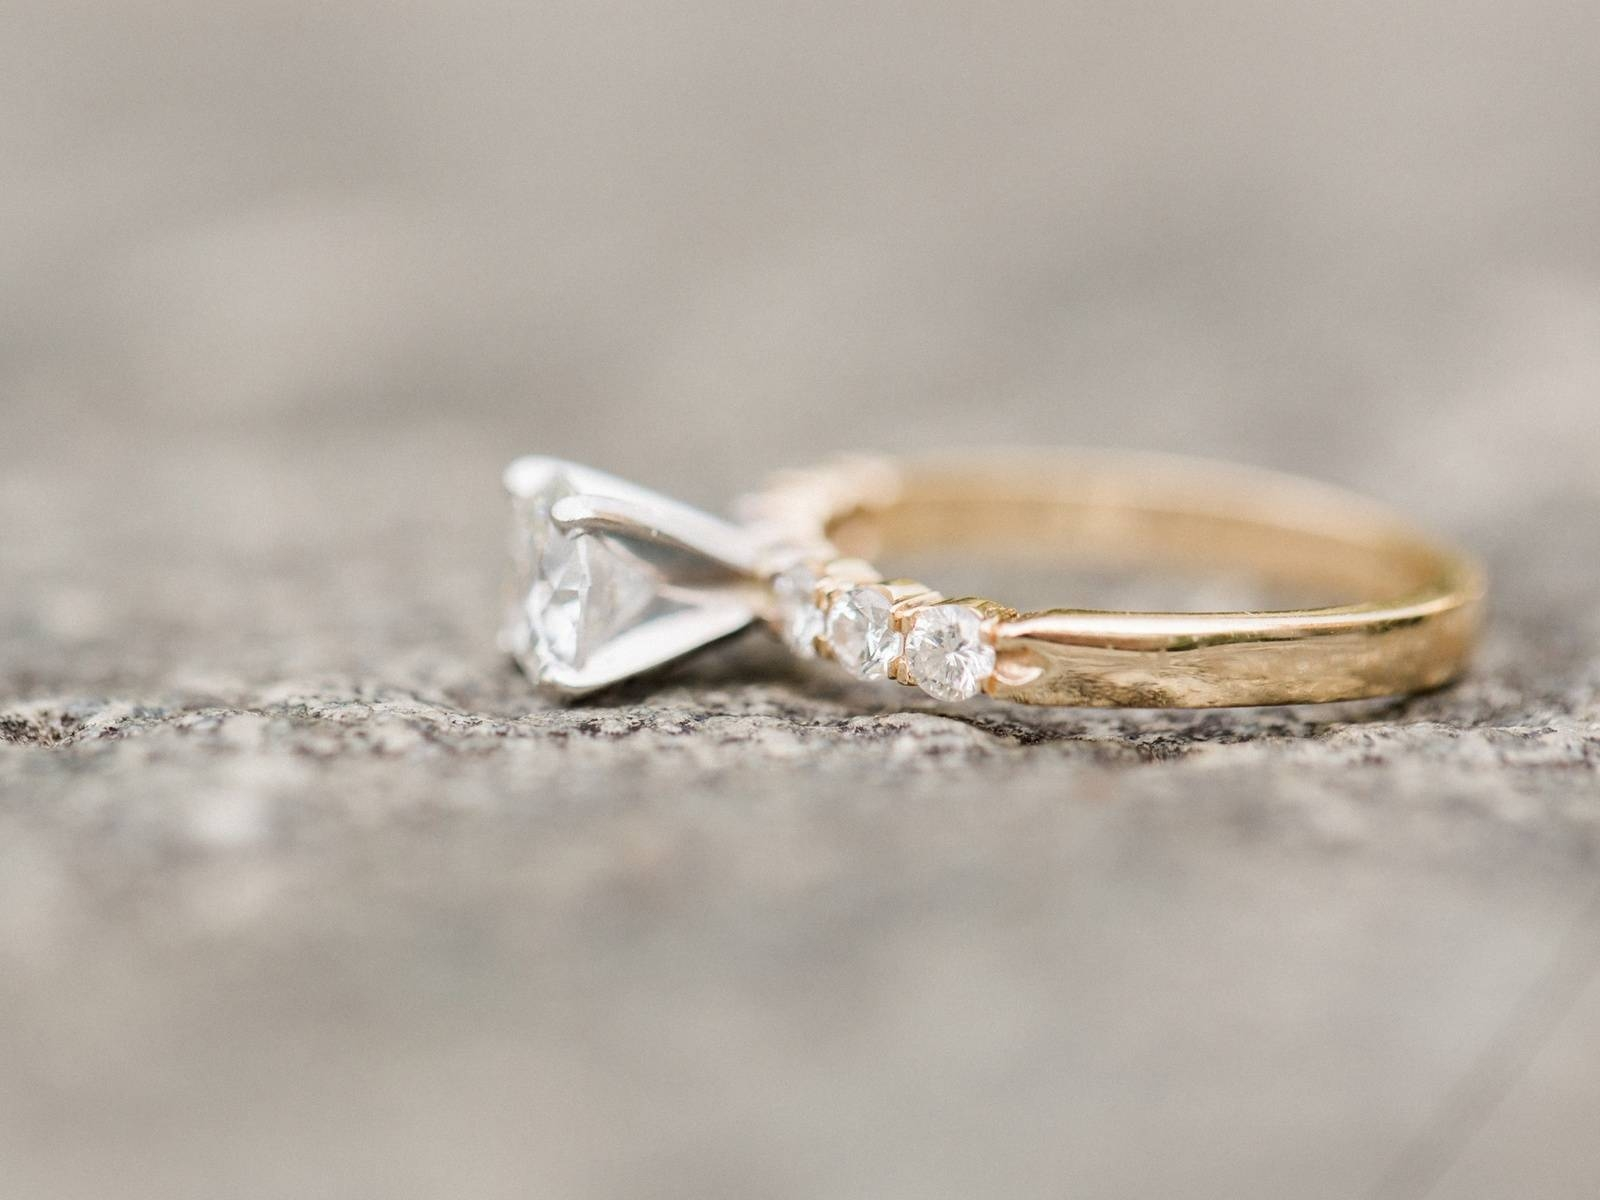 Molly Lichten Photography – Blog – Georgetown | Christine Intended For Washington Dc Engagement Rings (Gallery 6 of 15)